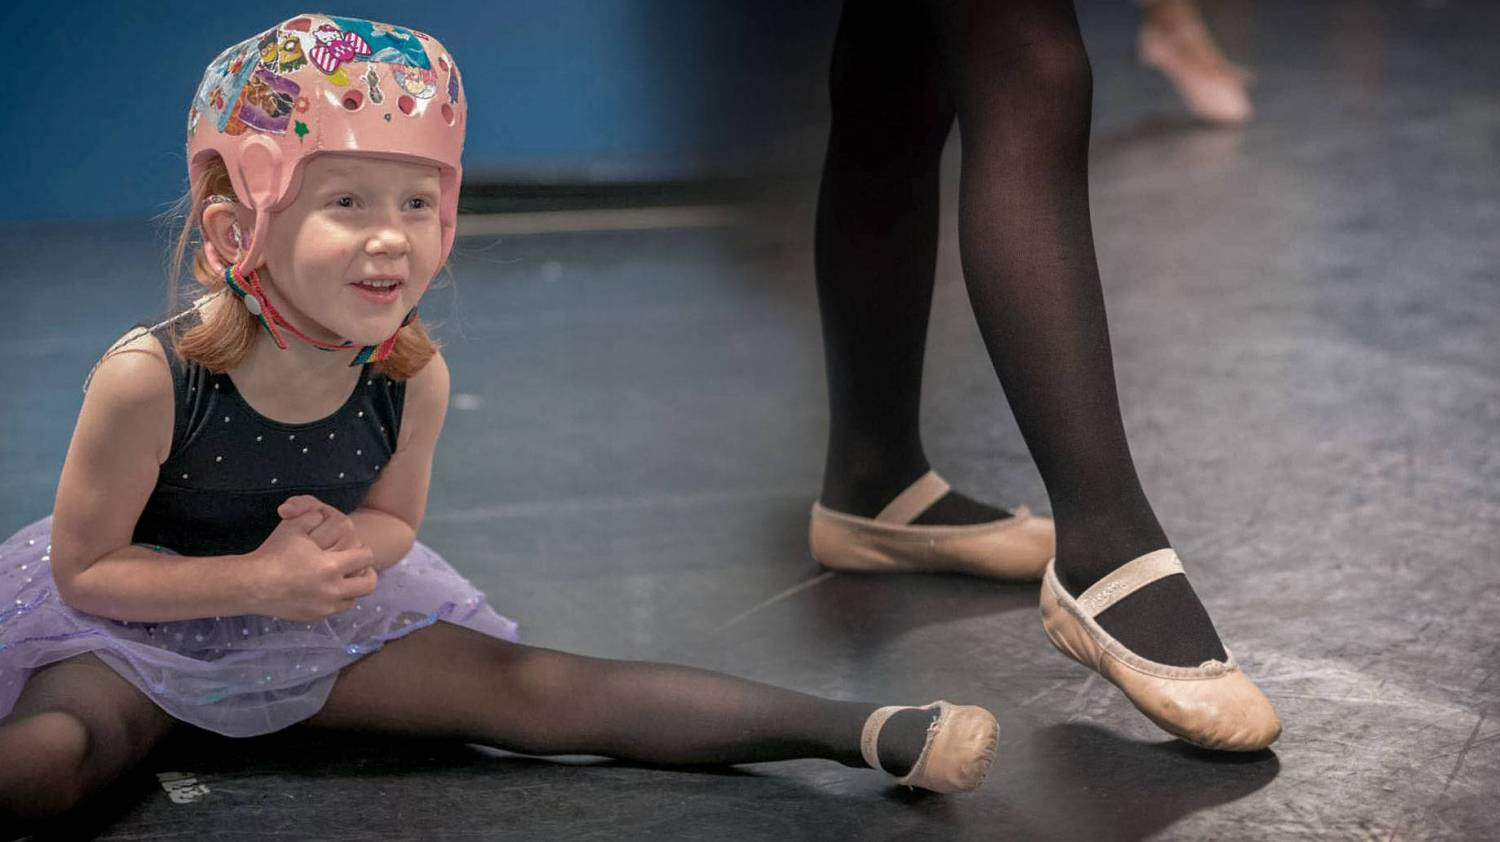 Ashlyn took ballet lessons before her brain injury. Thankfully, after months of rehabiltiation and recovery, she was able to return to dance.